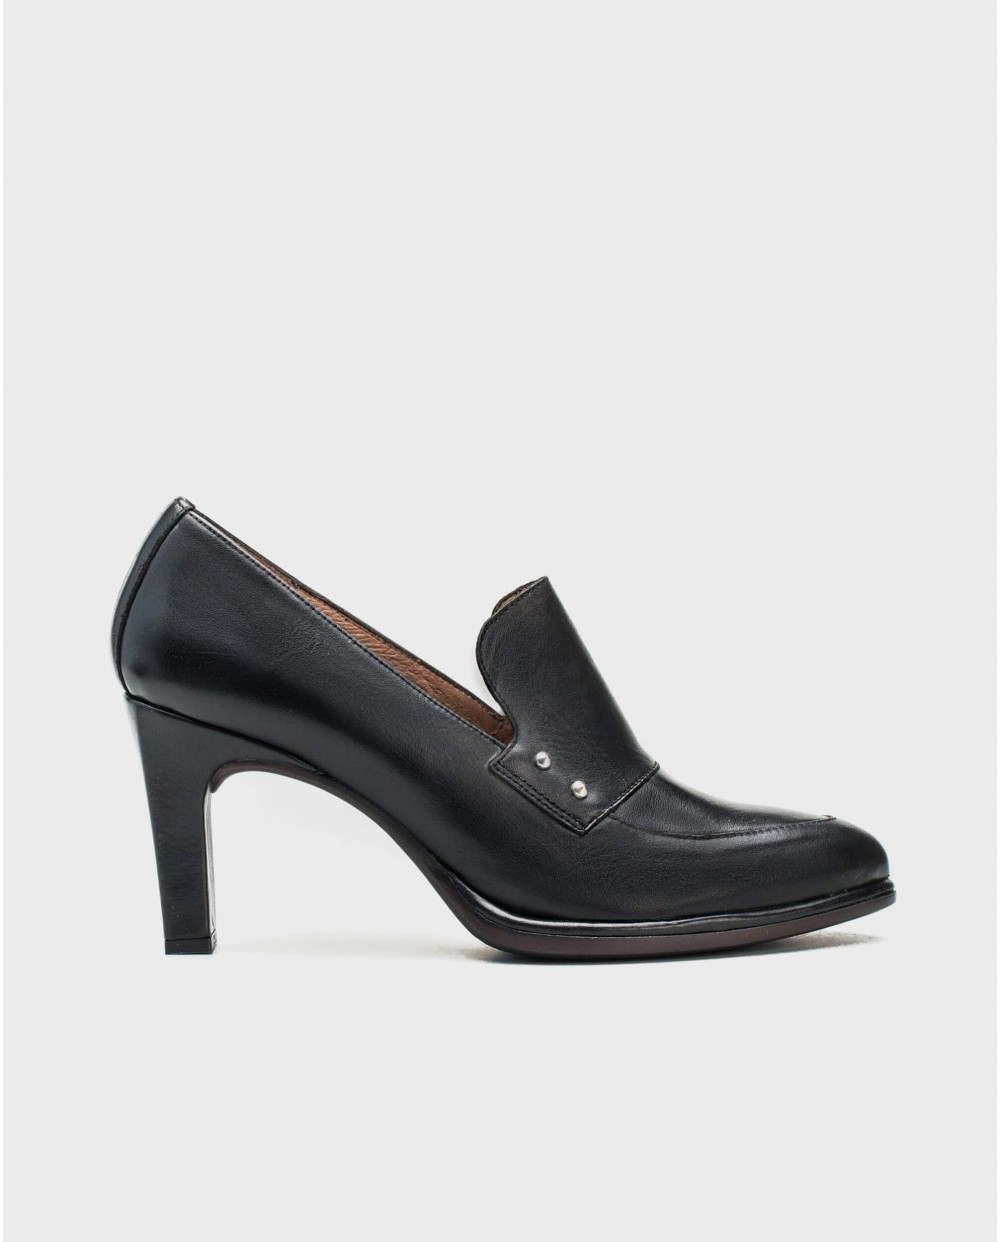 Wonders-Heels-Leather shoe with high front metallic detail